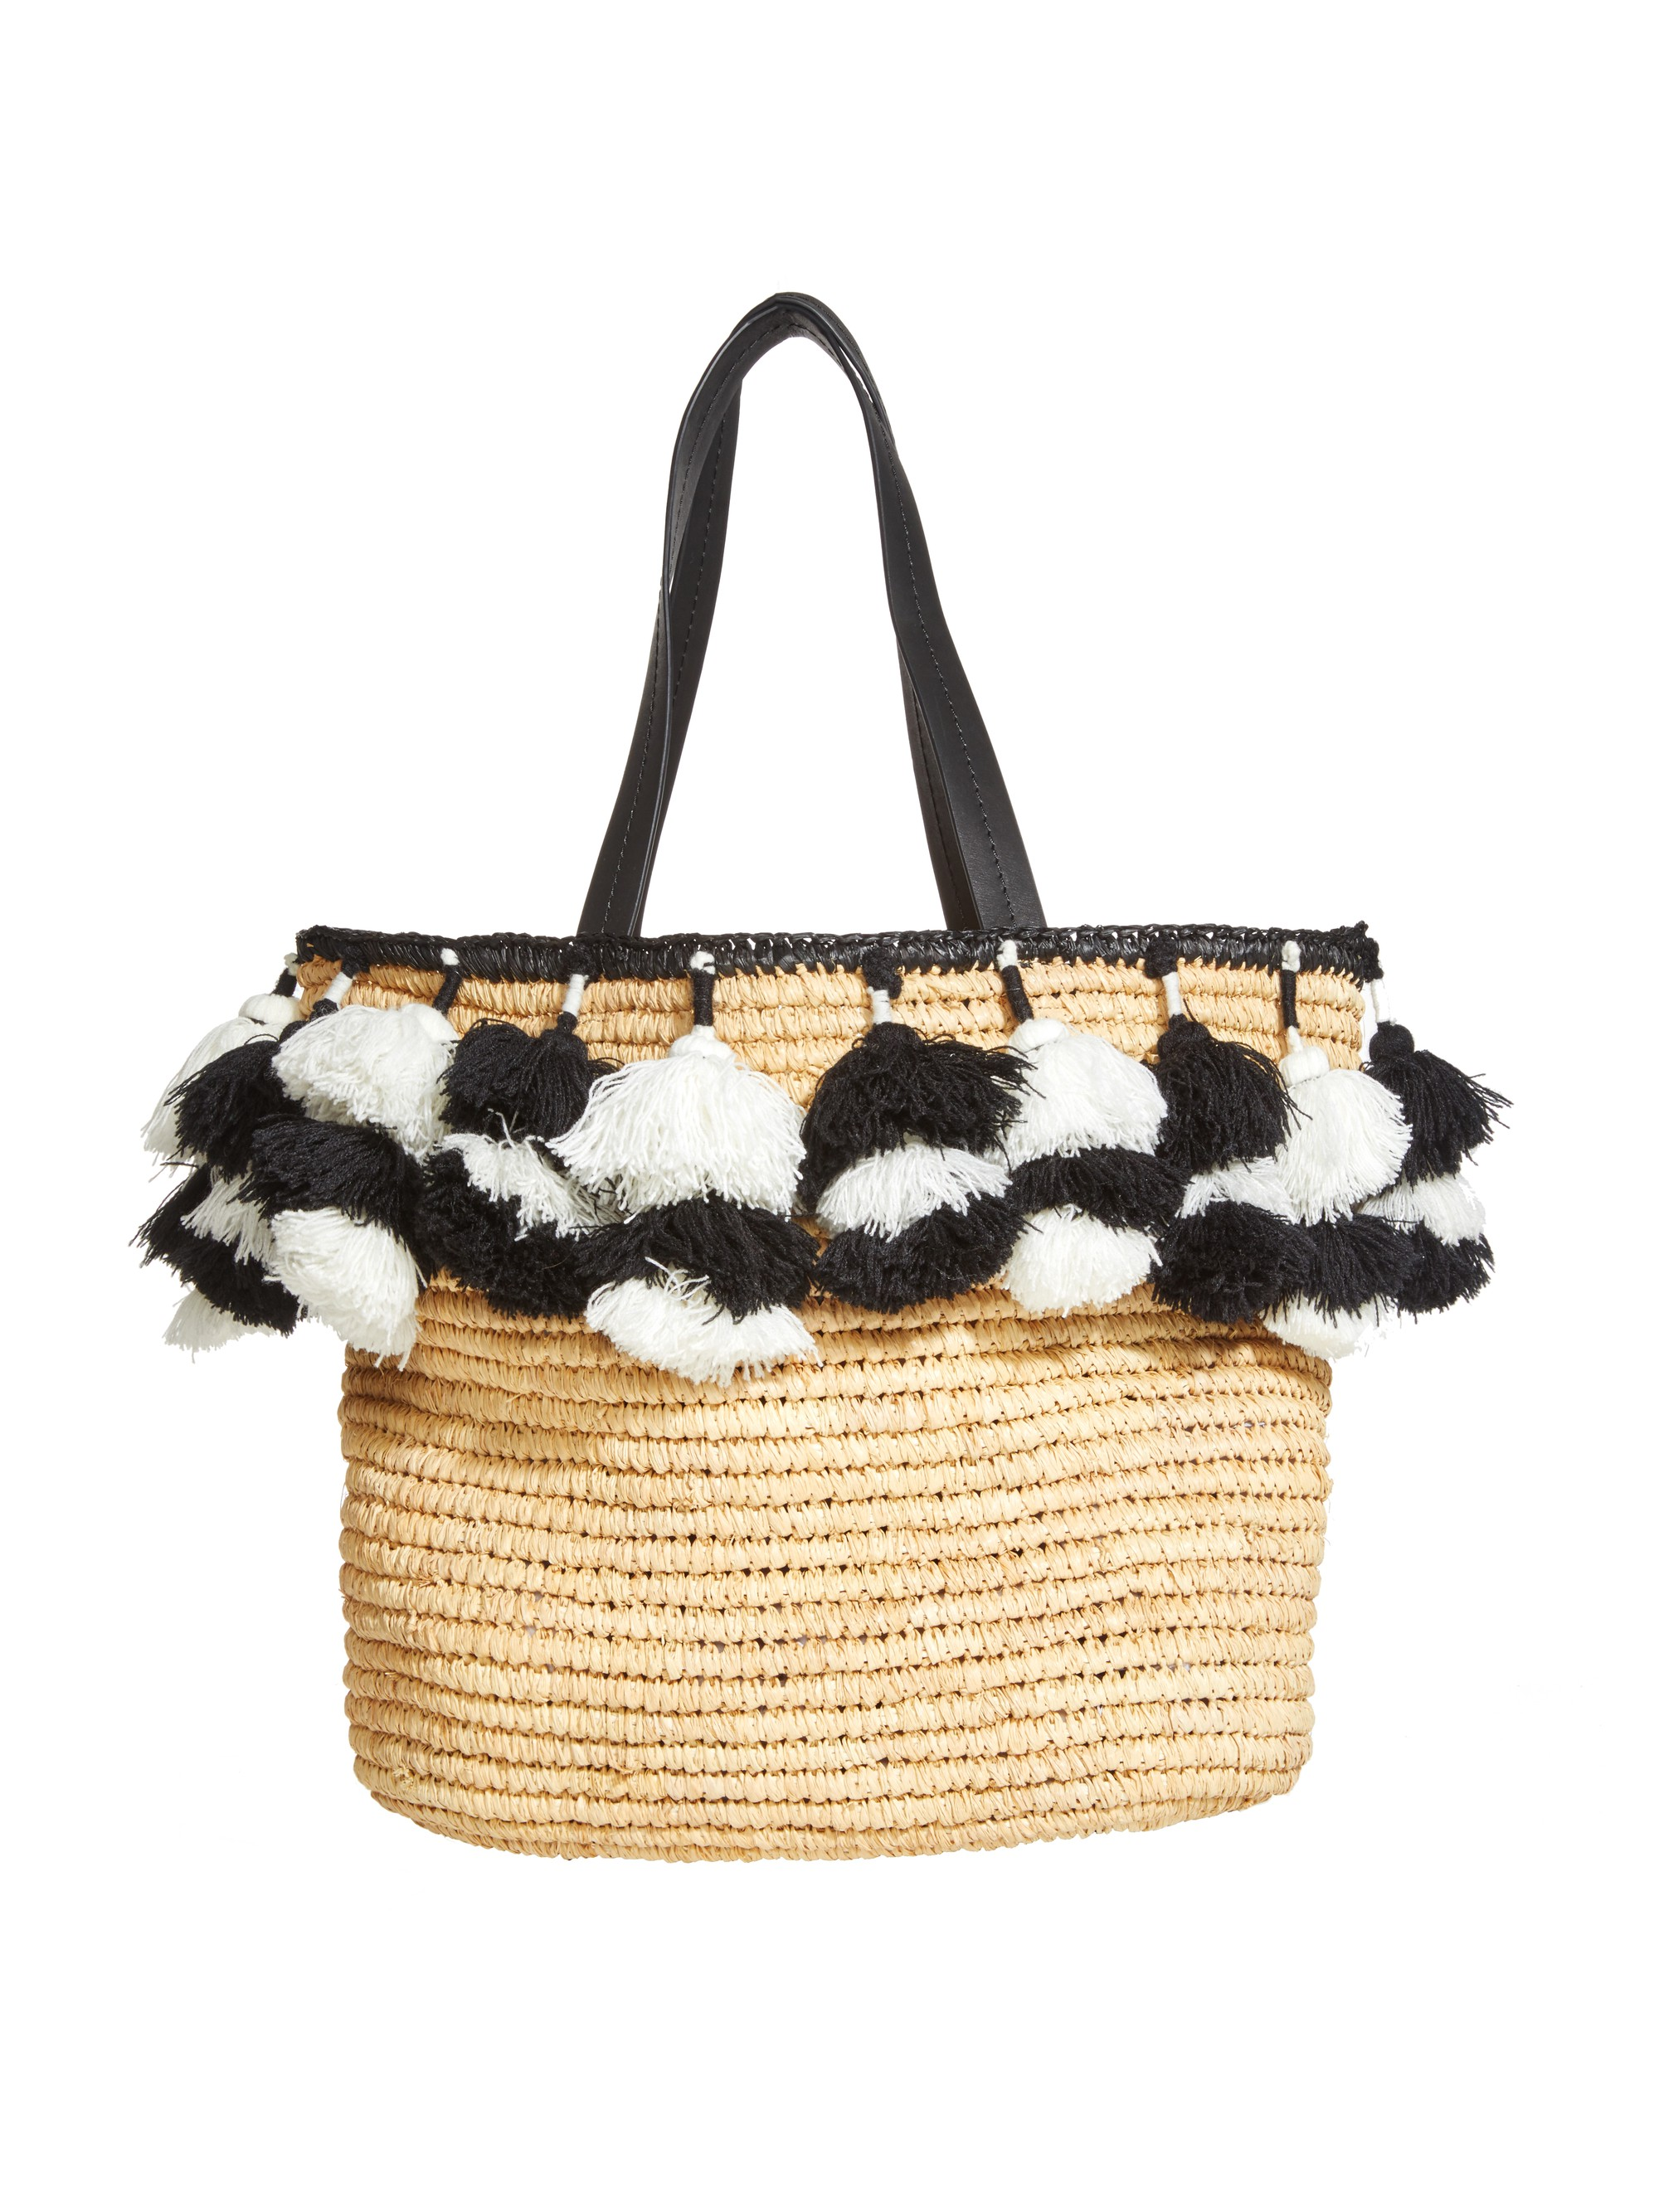 ALICE AND OLIVIA Sally Pom Pom Tote - Multi